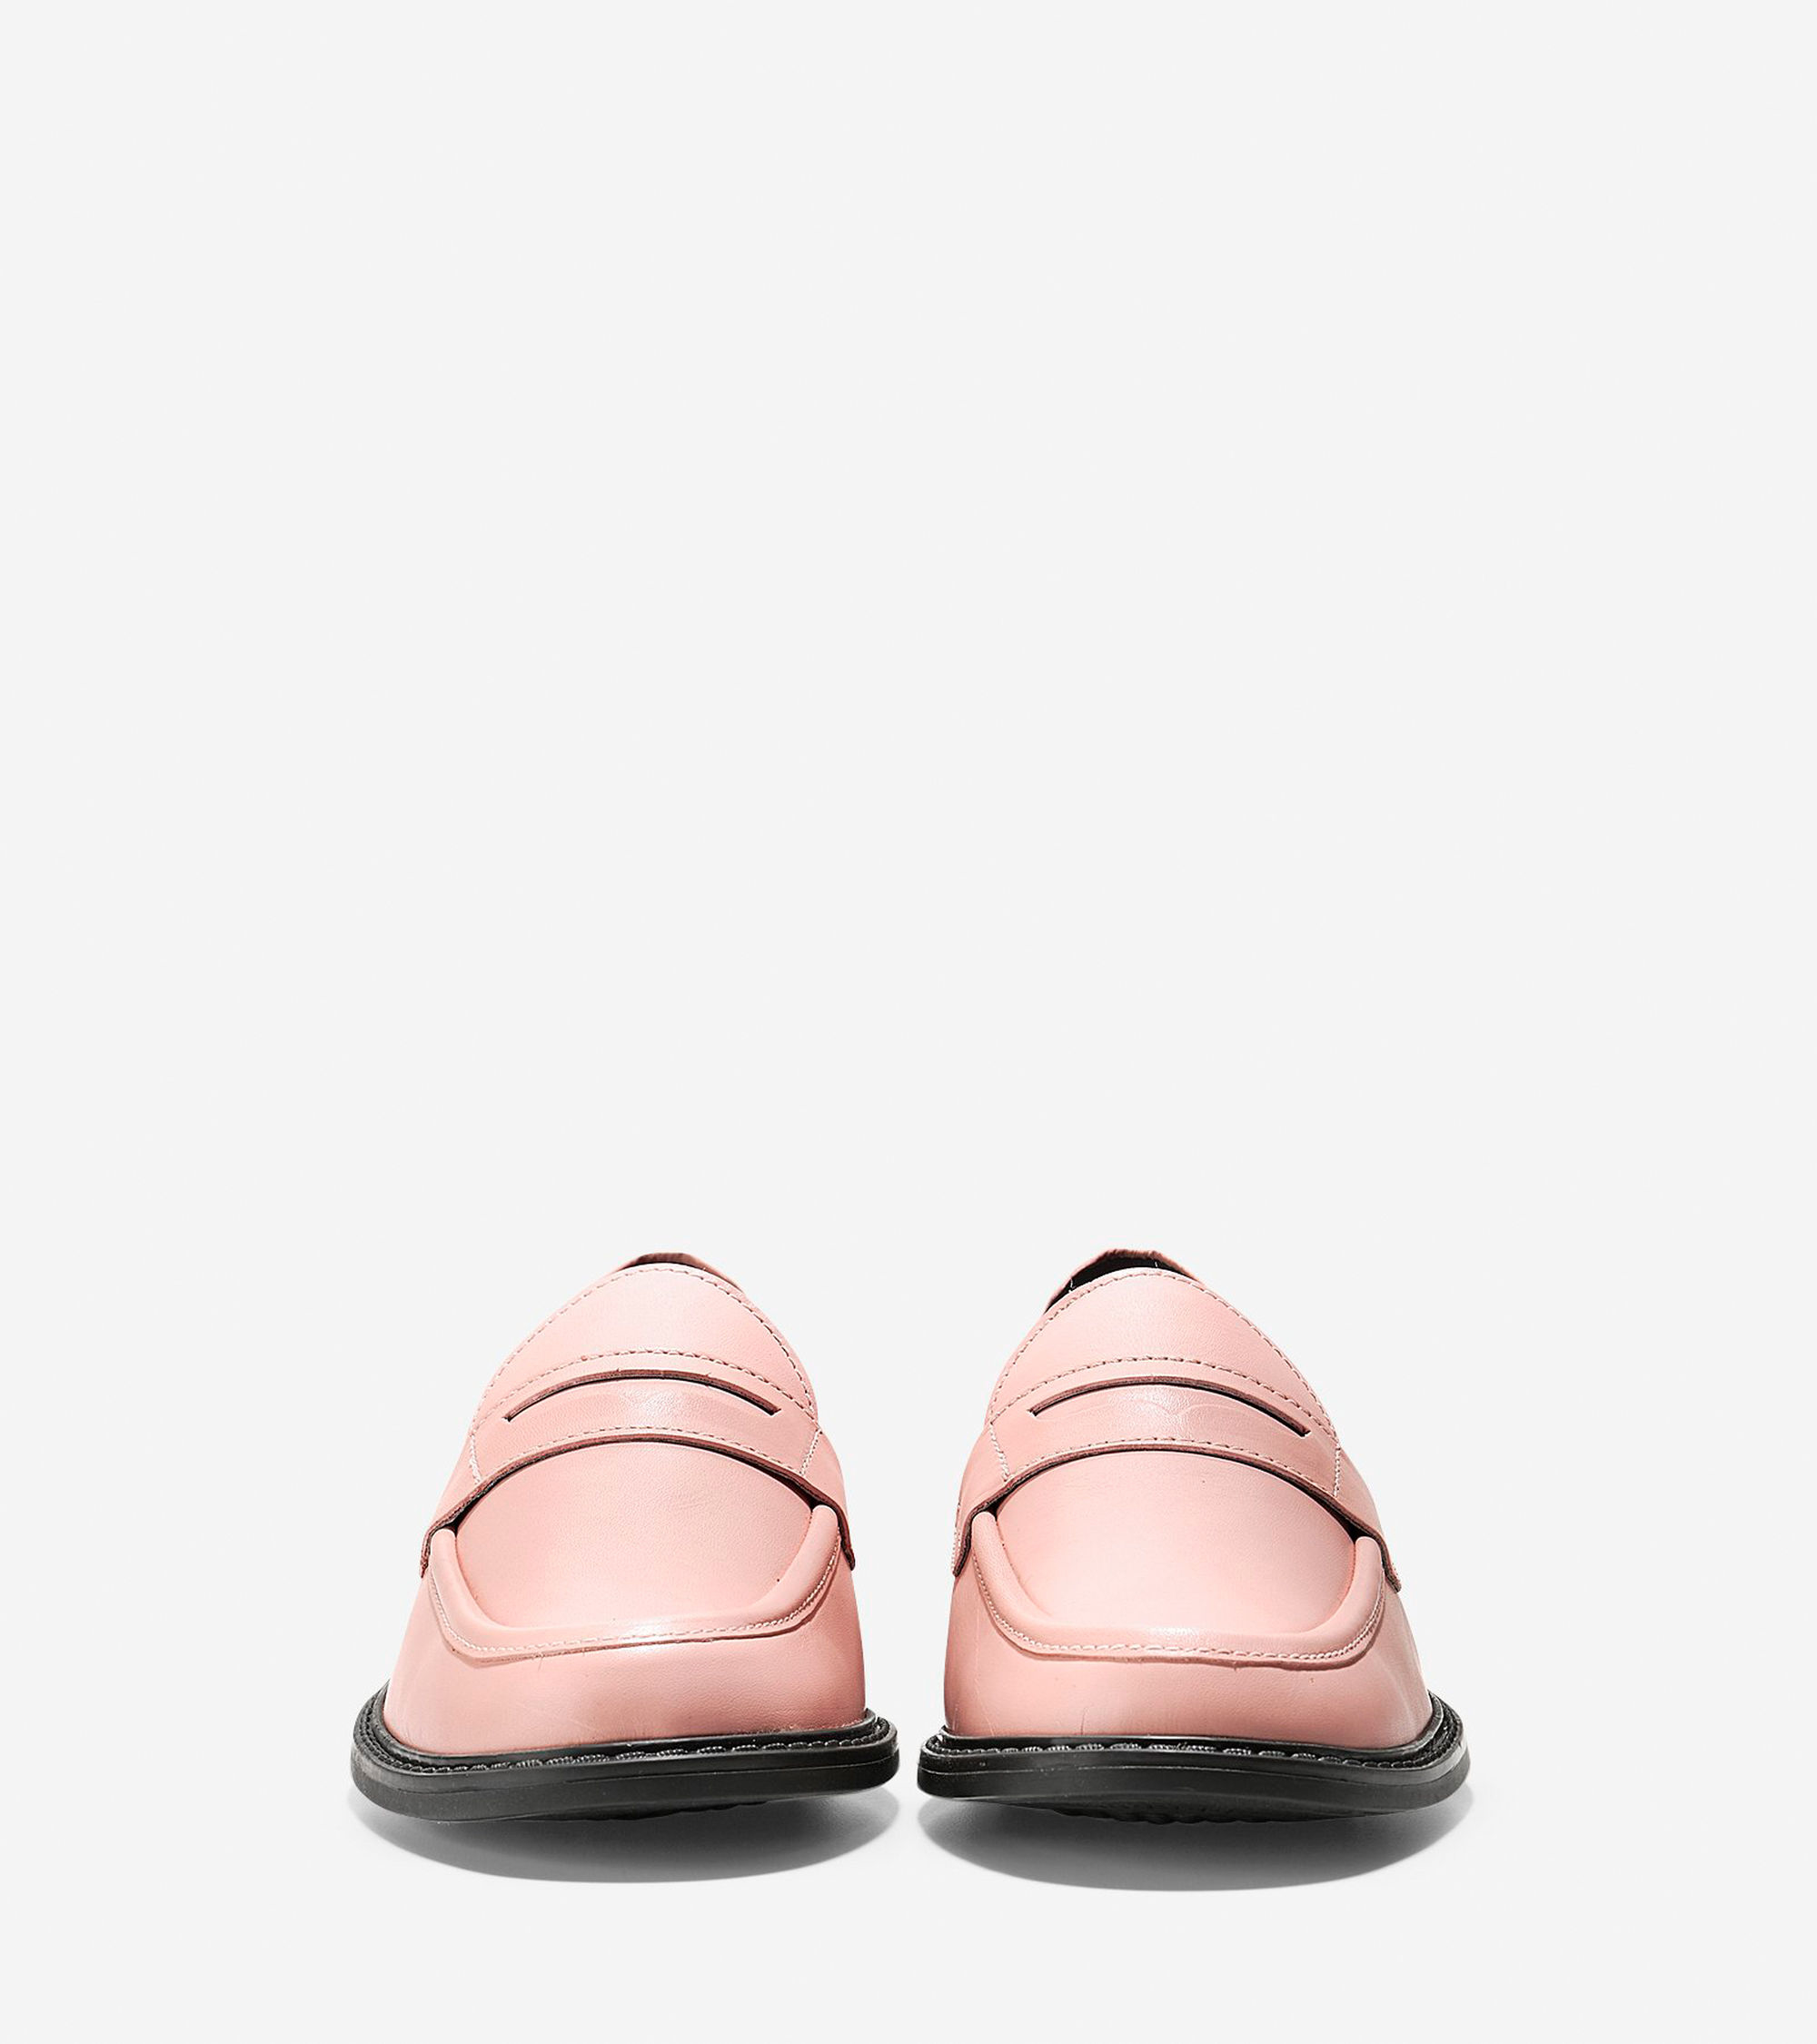 495a8bf0a78 Cole Haan Women s Pinch Campus Penny Loafer in Pink - Lyst